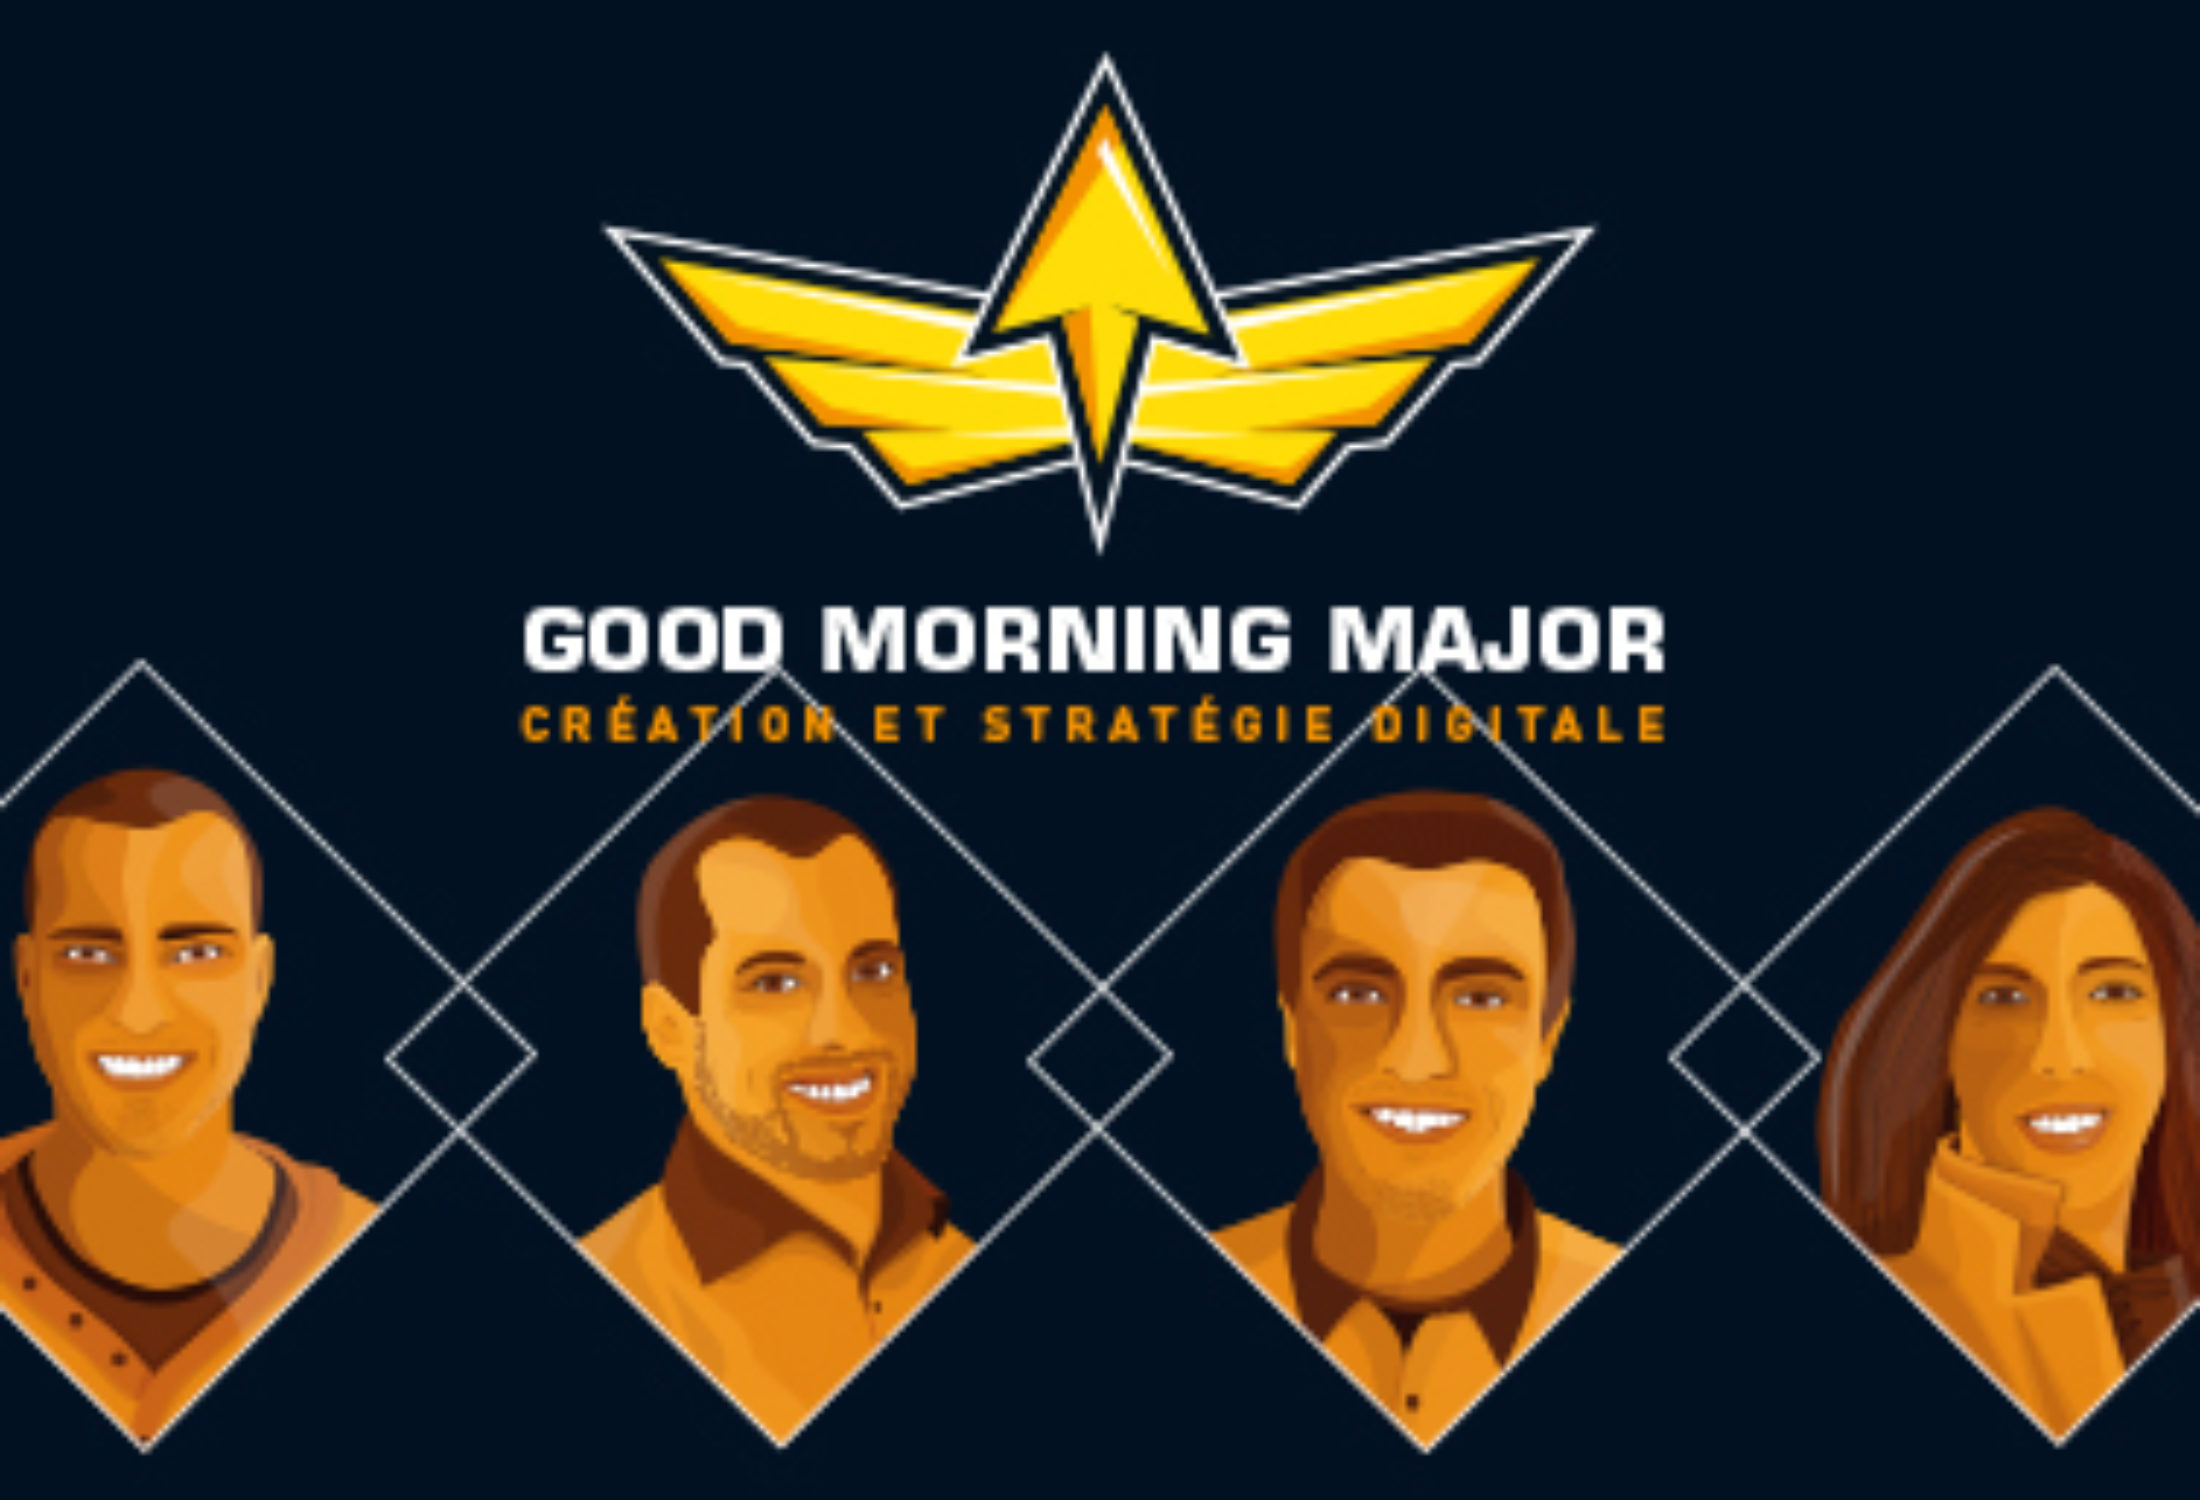 [COWORKERS DE LA SEMAINE] Good Morning Major, 4 Plagistes en un